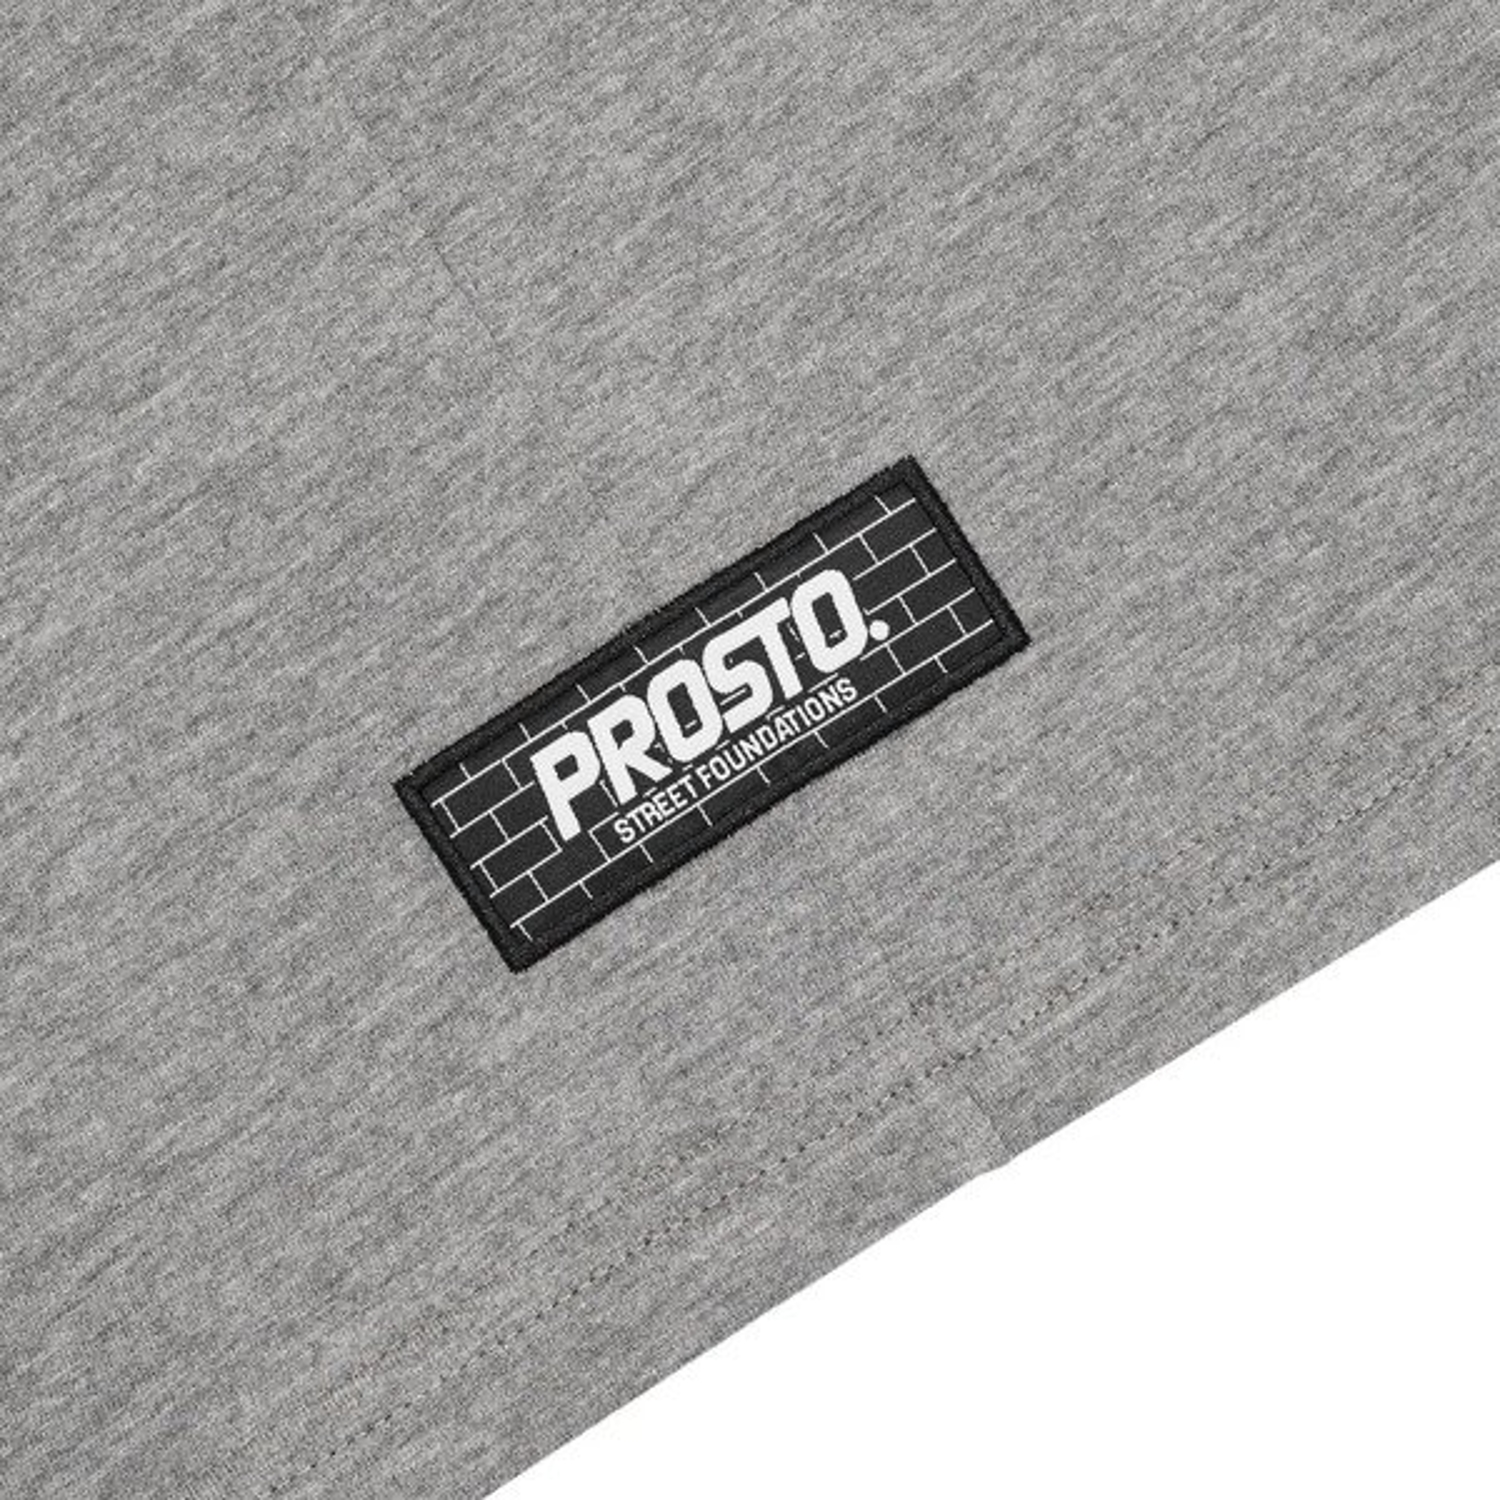 14d9c9f9f9dd0 Koszulka T-Shirt Prosto Klasyk Brick Shield grey - Producent  PROSTO ...